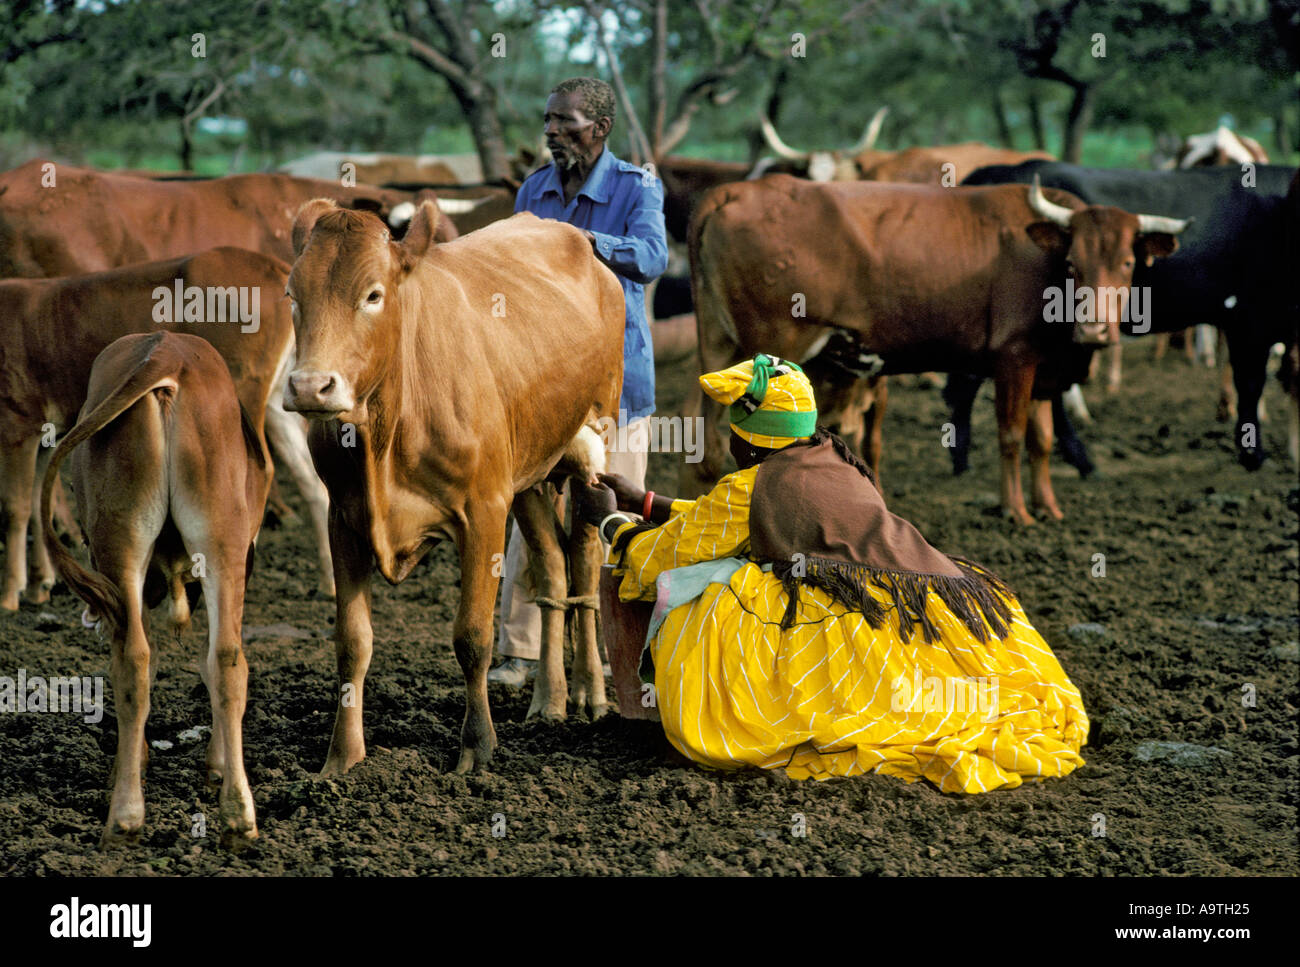 Herero Woman wearing traditional clothes and headdress milking a cow Herero women are the only woman permitted to Stock Photo